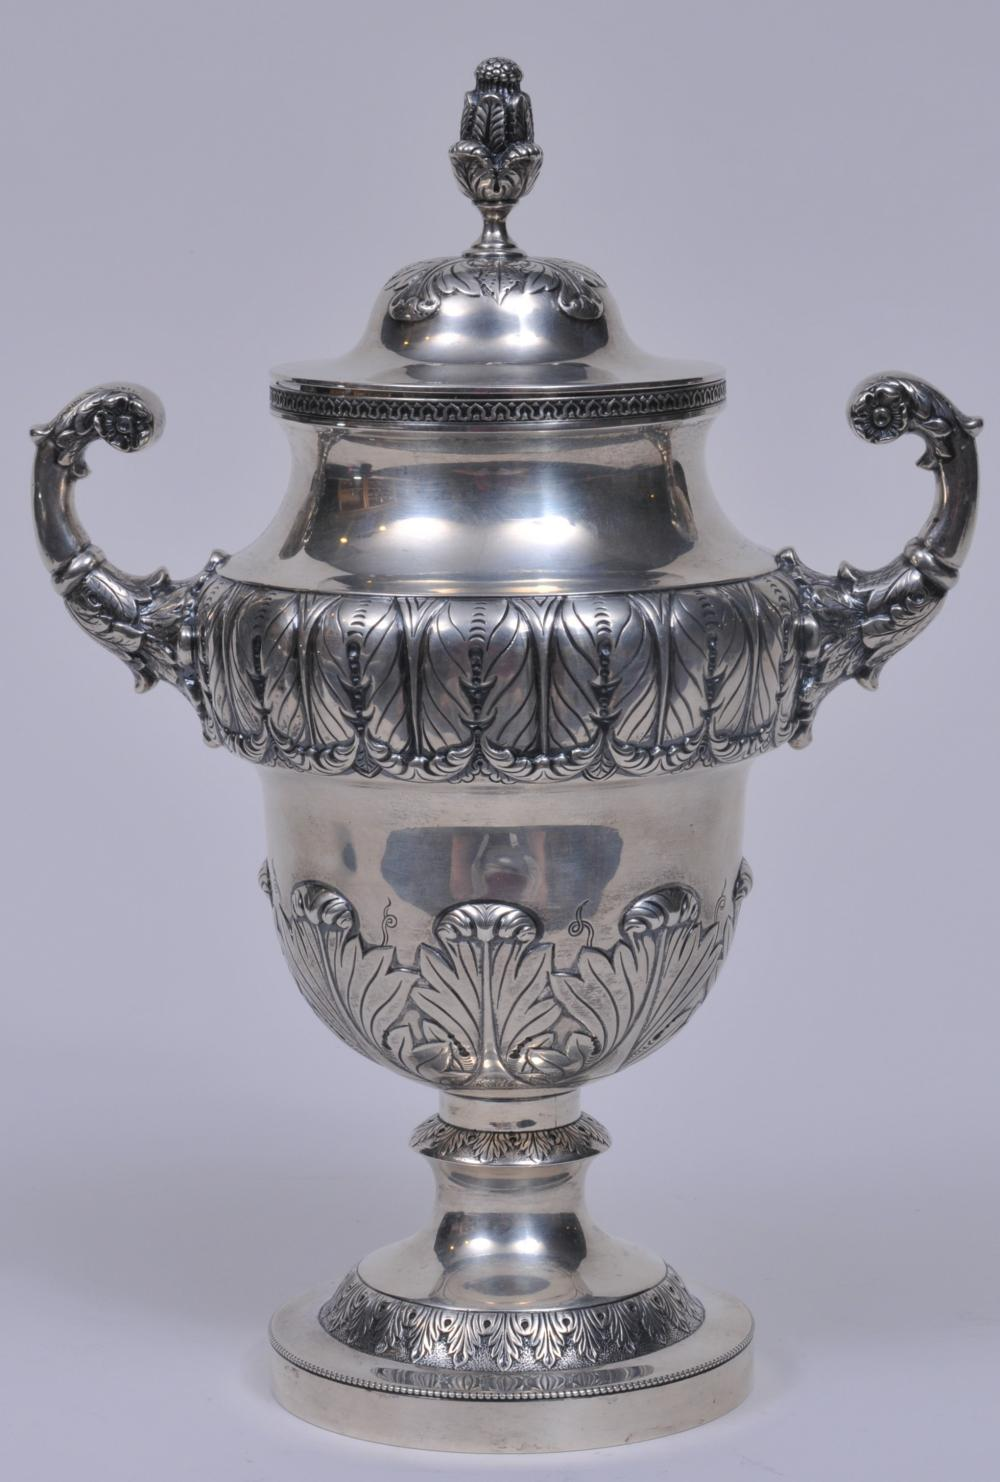 """S. Kirk & Son sterling silver large two handled covered cup. Leaf decorated finial and handles. Leaf repousse decorated beaded and geometric borders. 3/8"""" slight dent on body. Base rim slightly dented. 12"""" high. 1917 inscription on base. 35.5 ozt."""